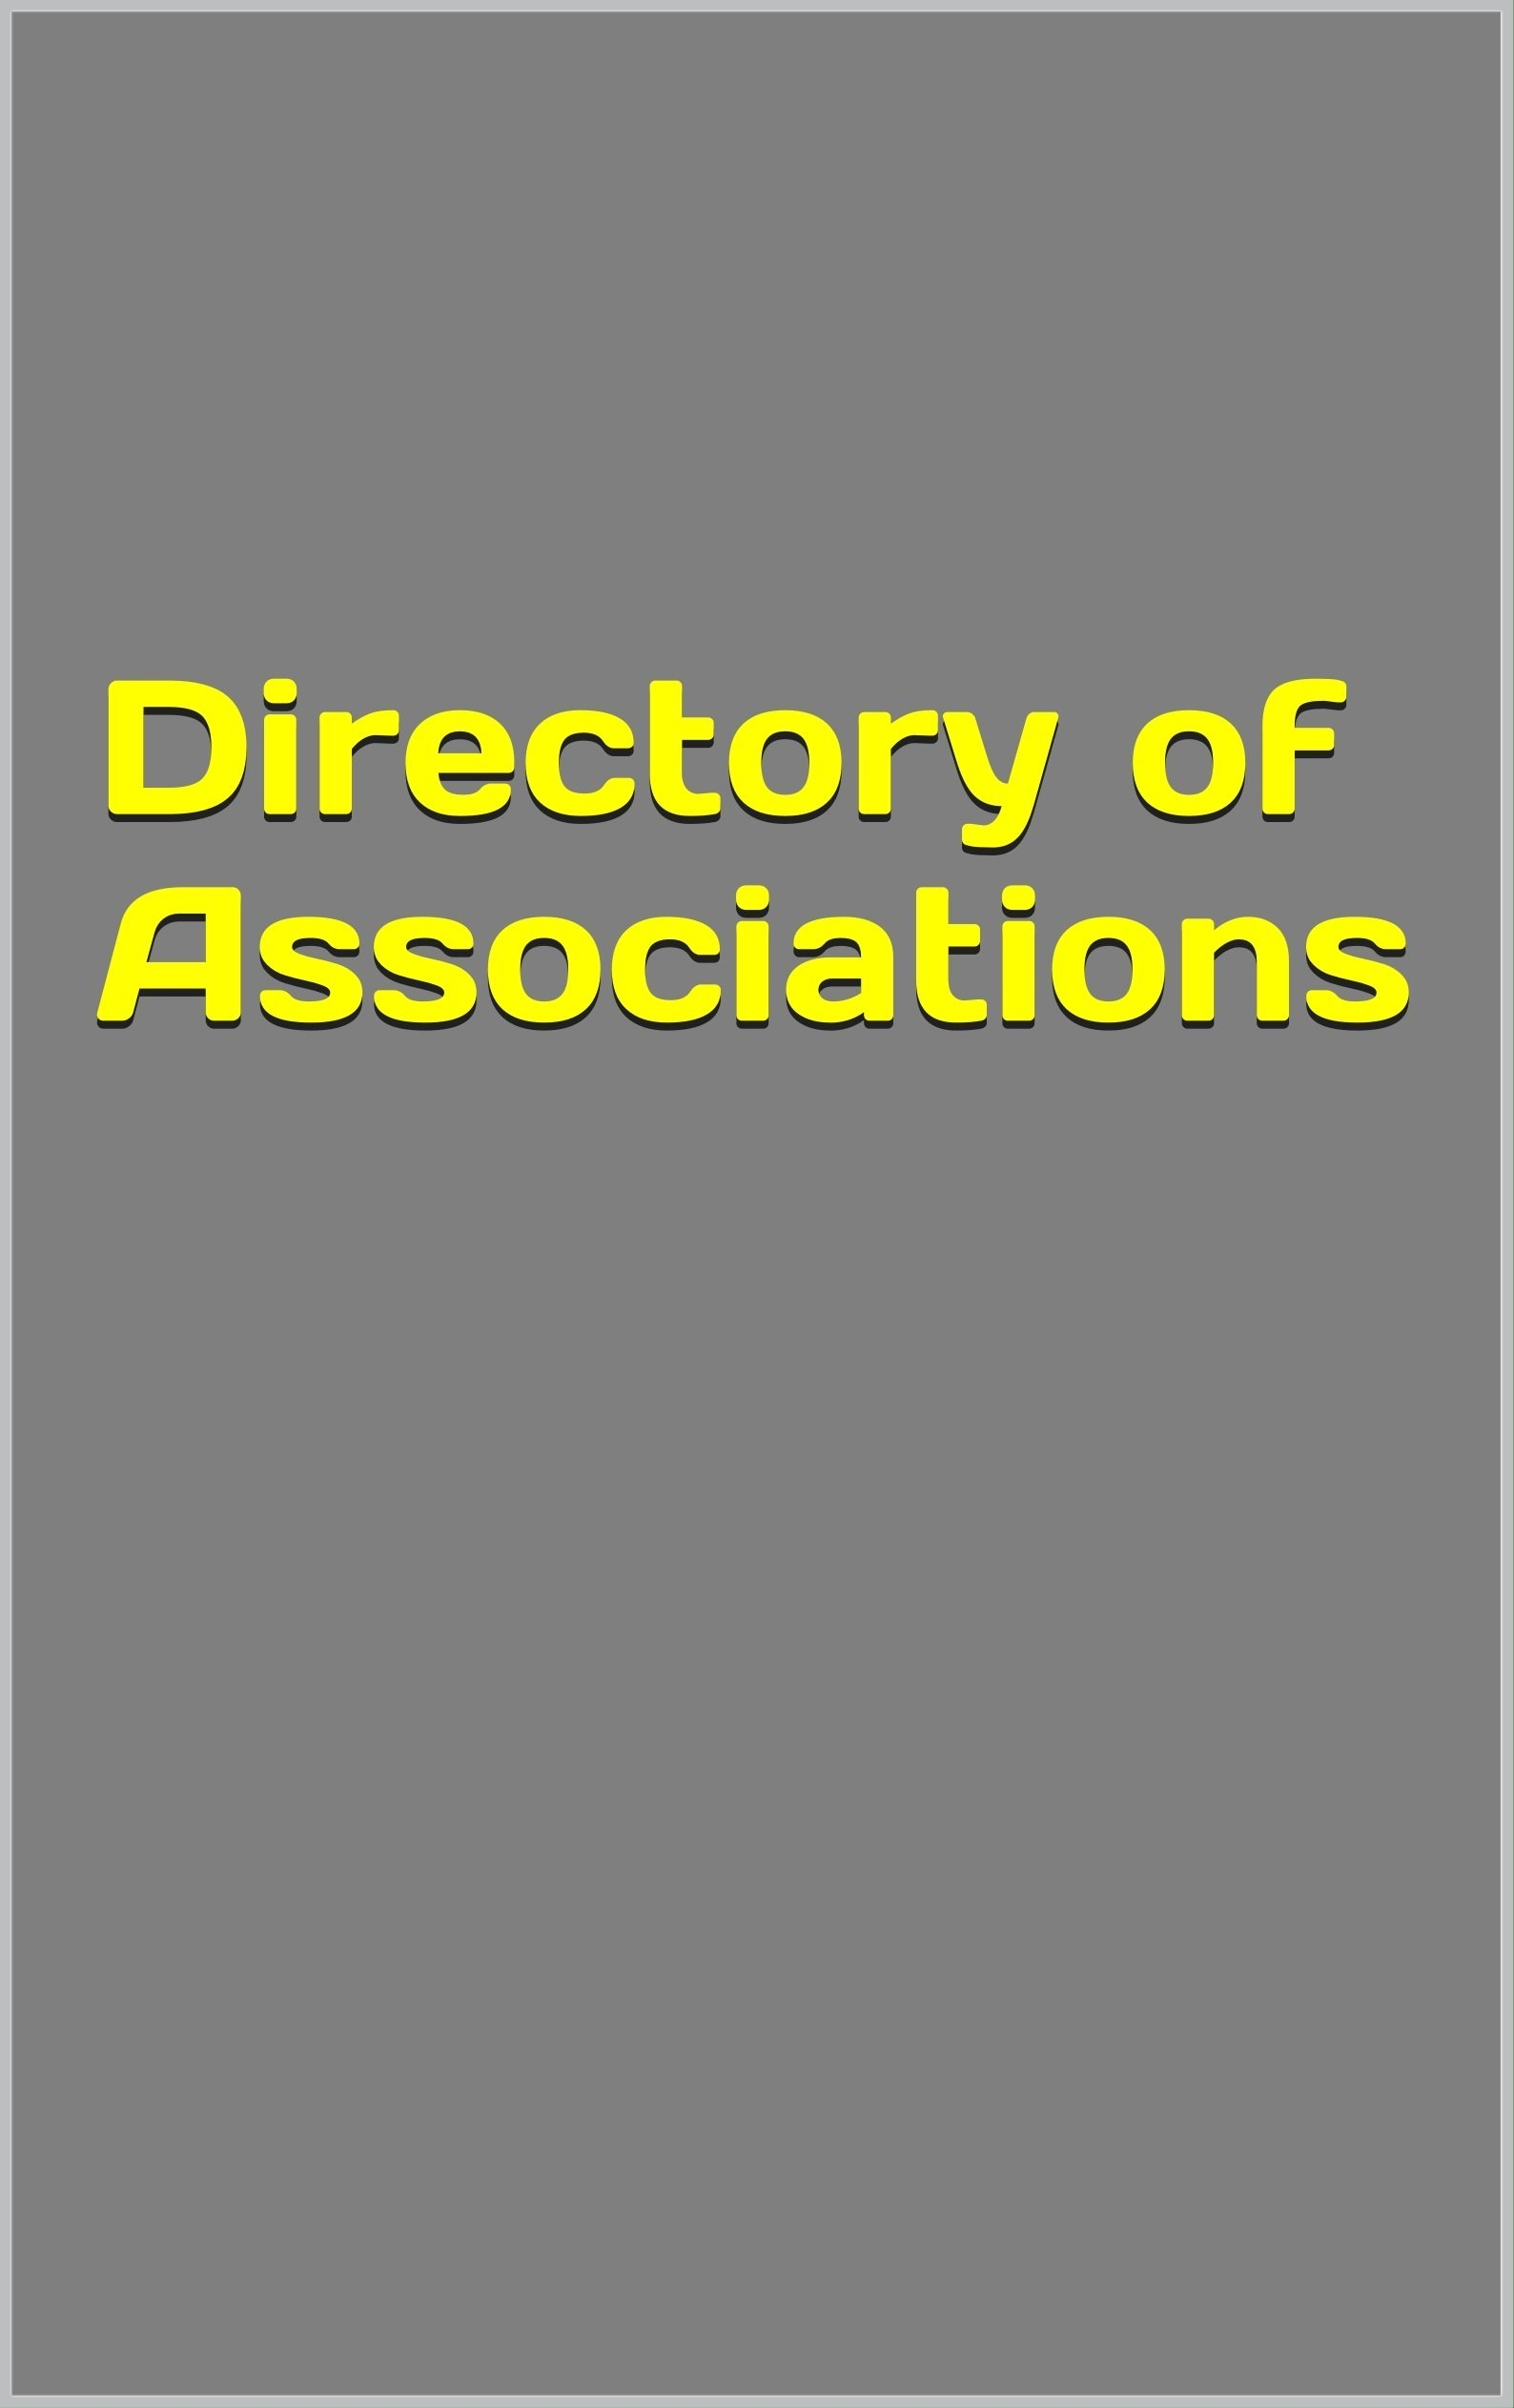 A Directory of Associations: 10,000+ Associations, Societies, Federations, and Think Tanks